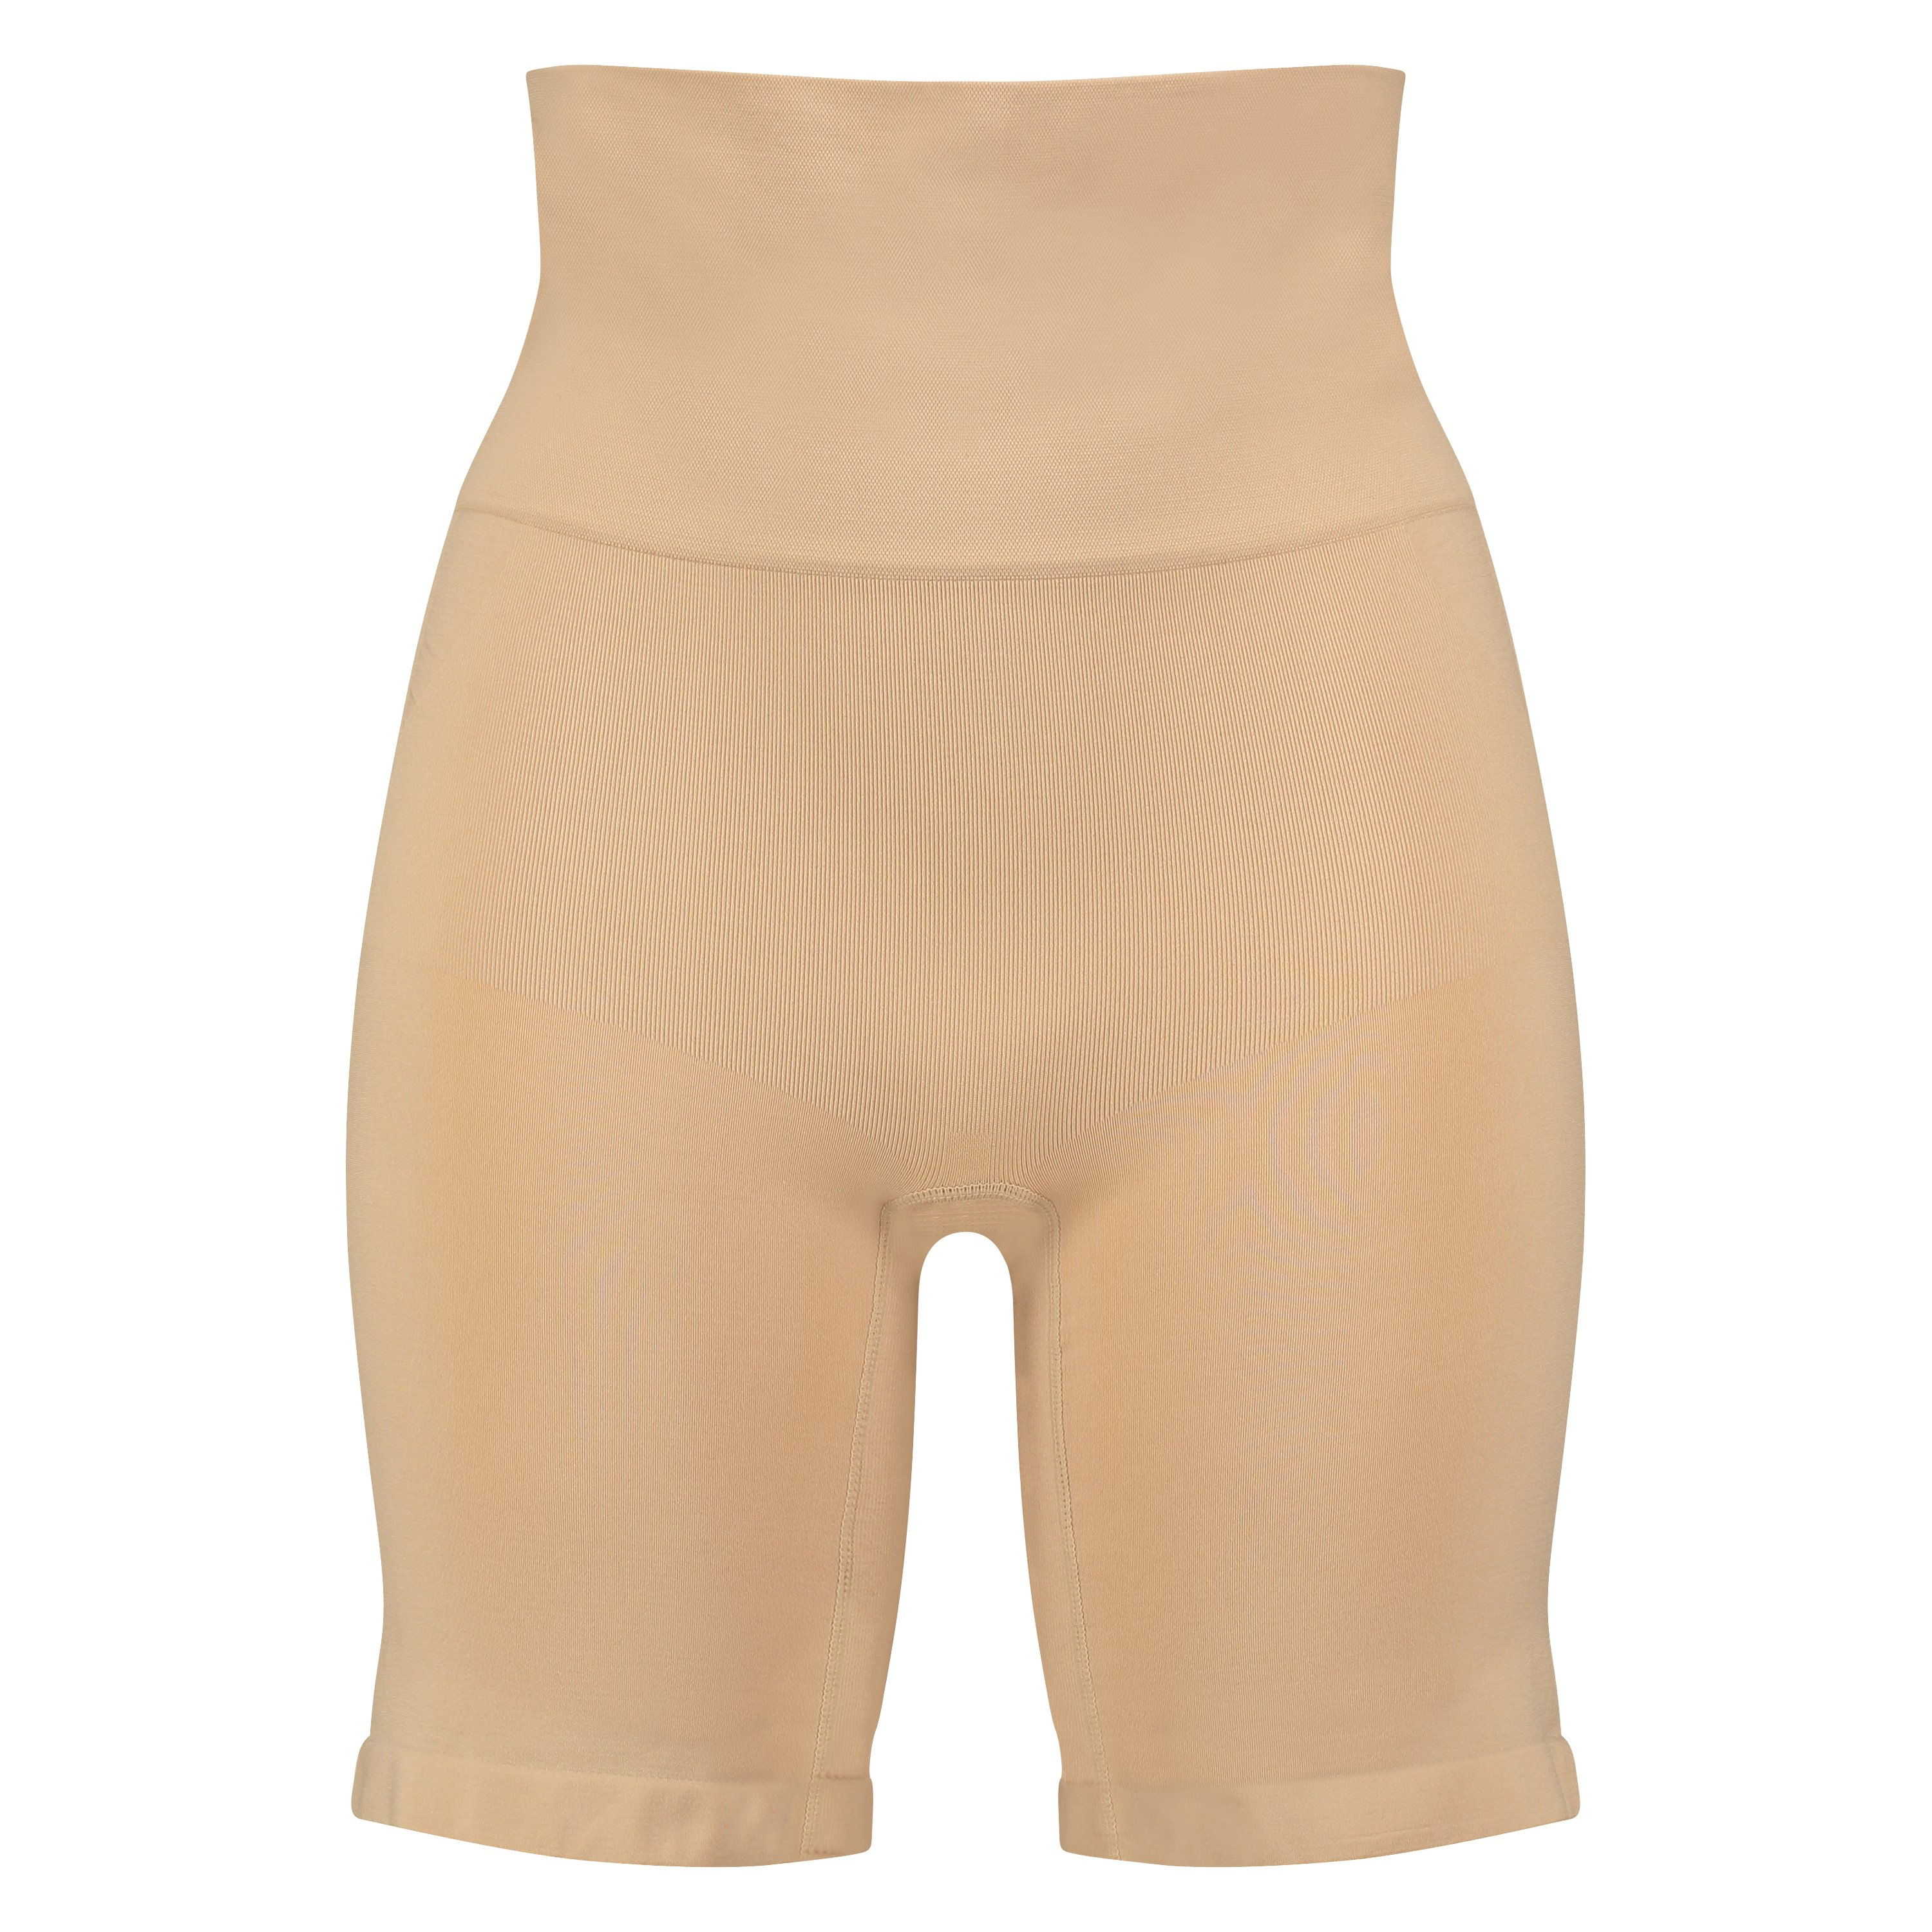 Firming high trousers - Level 2, Beige, main